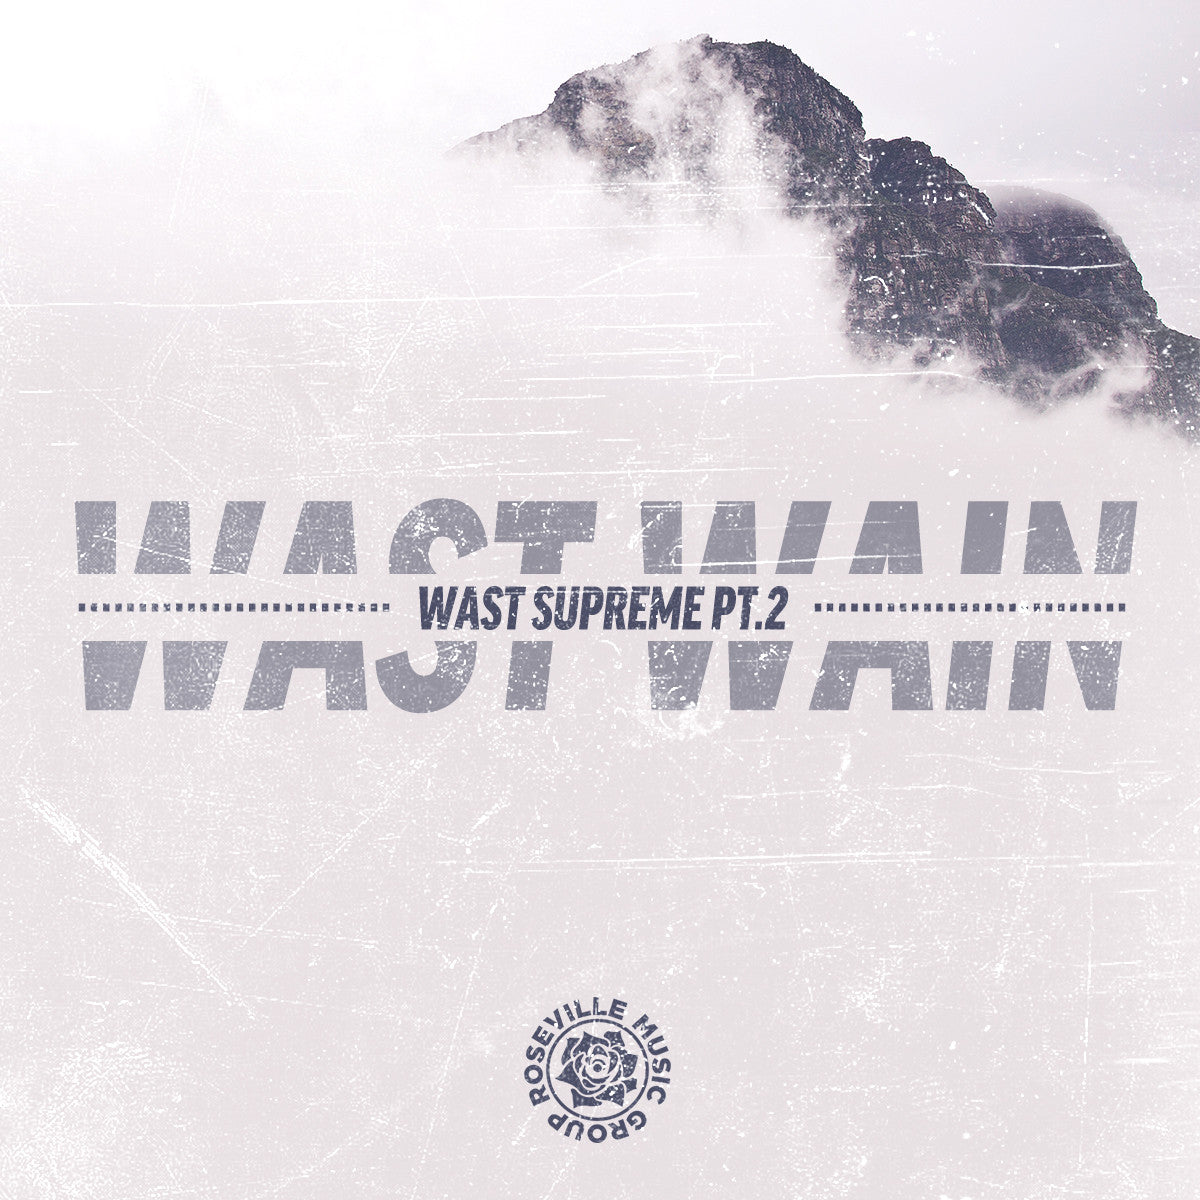 SINGLE - Wast Wain - Wast Supreme Pt. 2